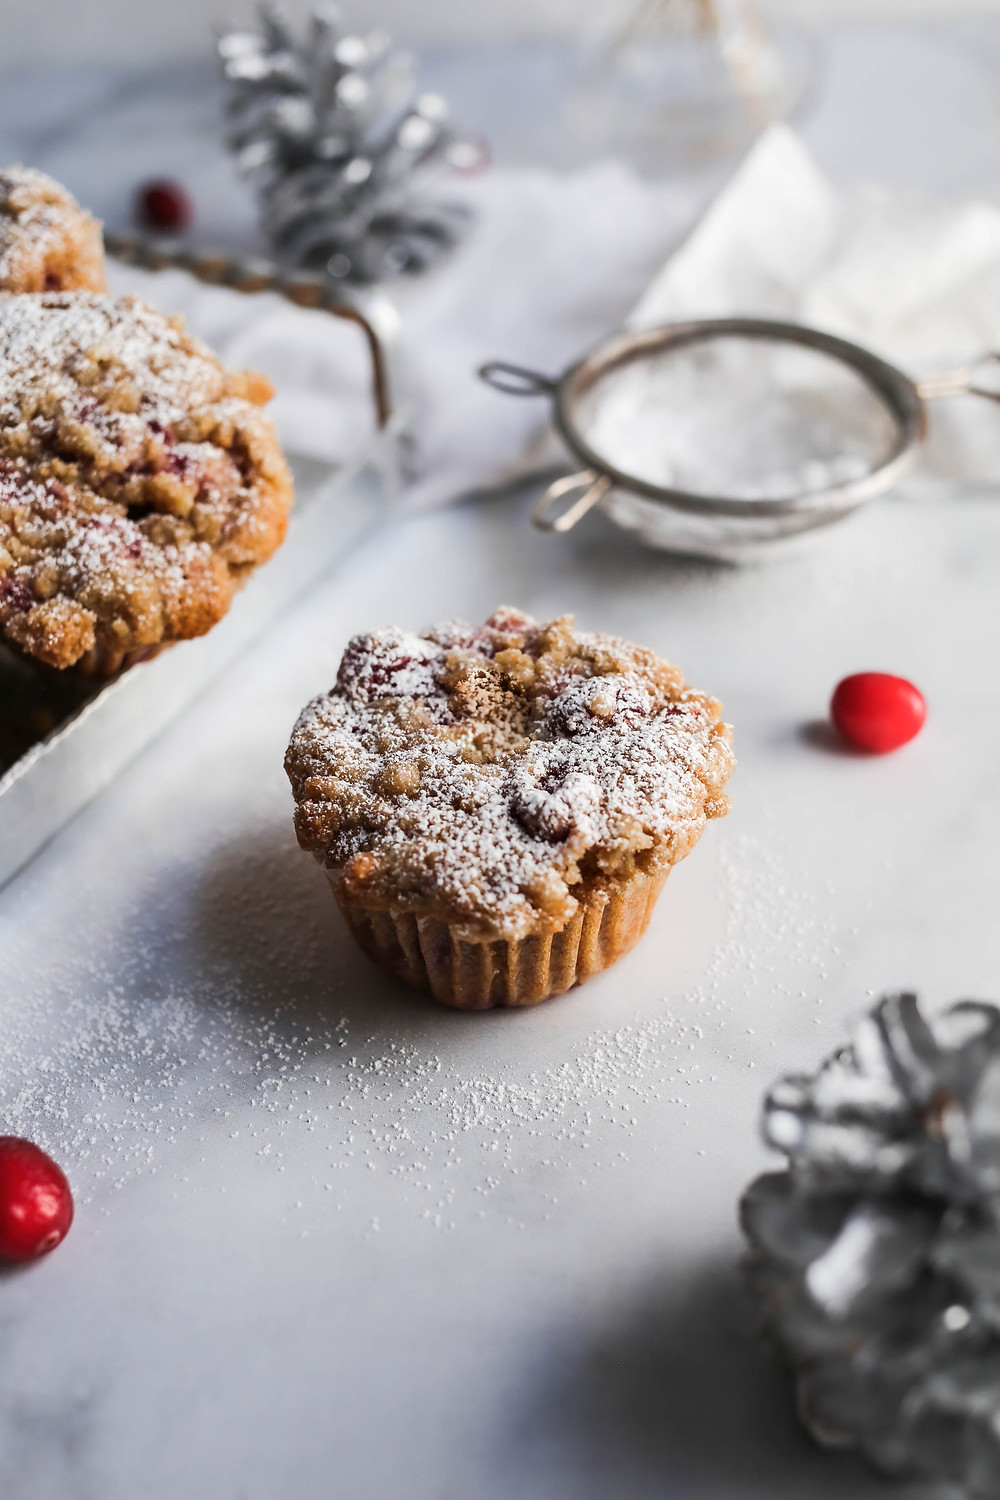 A single cranberry muffin surrounded by silver pinecones and powdered sugar